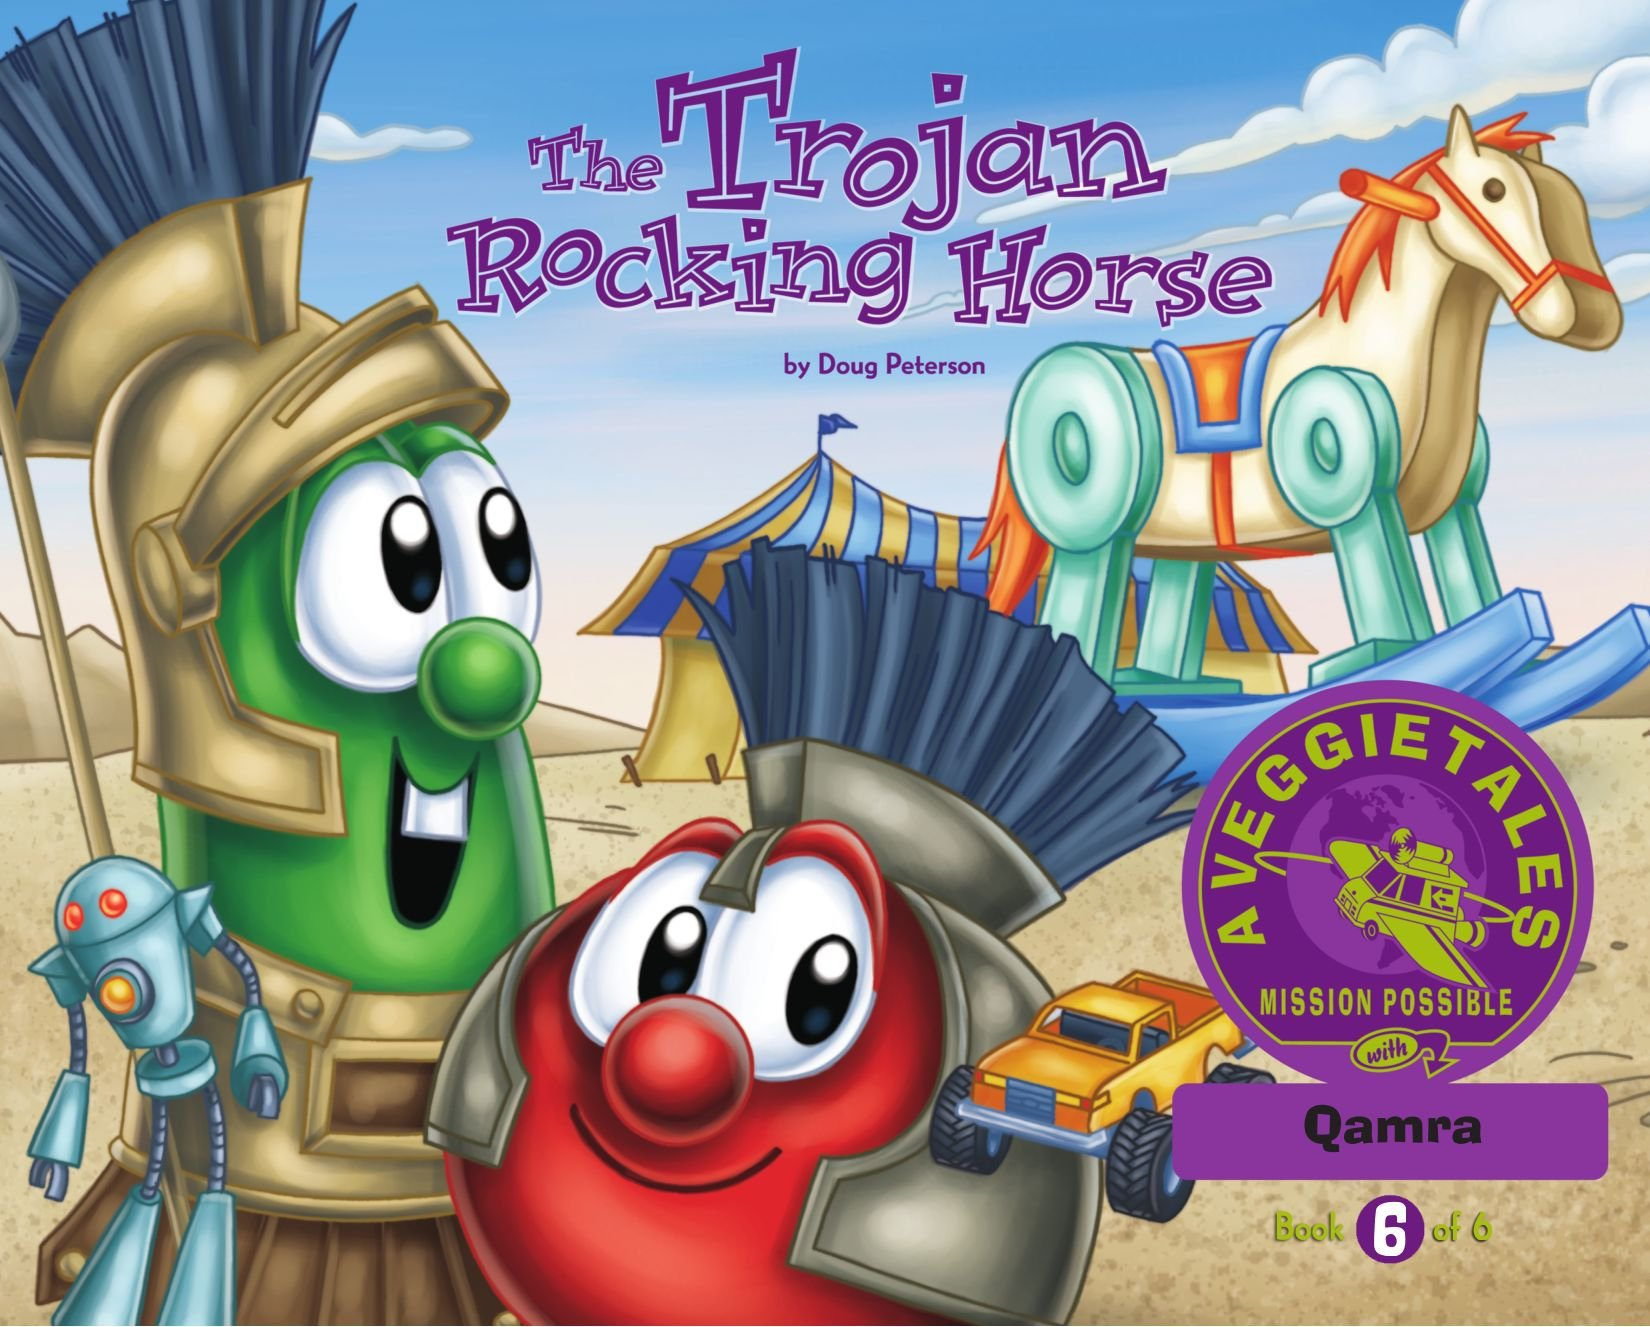 The Trojan Rocking Horse - VeggieTales Mission Possible Adventure Series #6: Personalized for Qamra (Girl) PDF